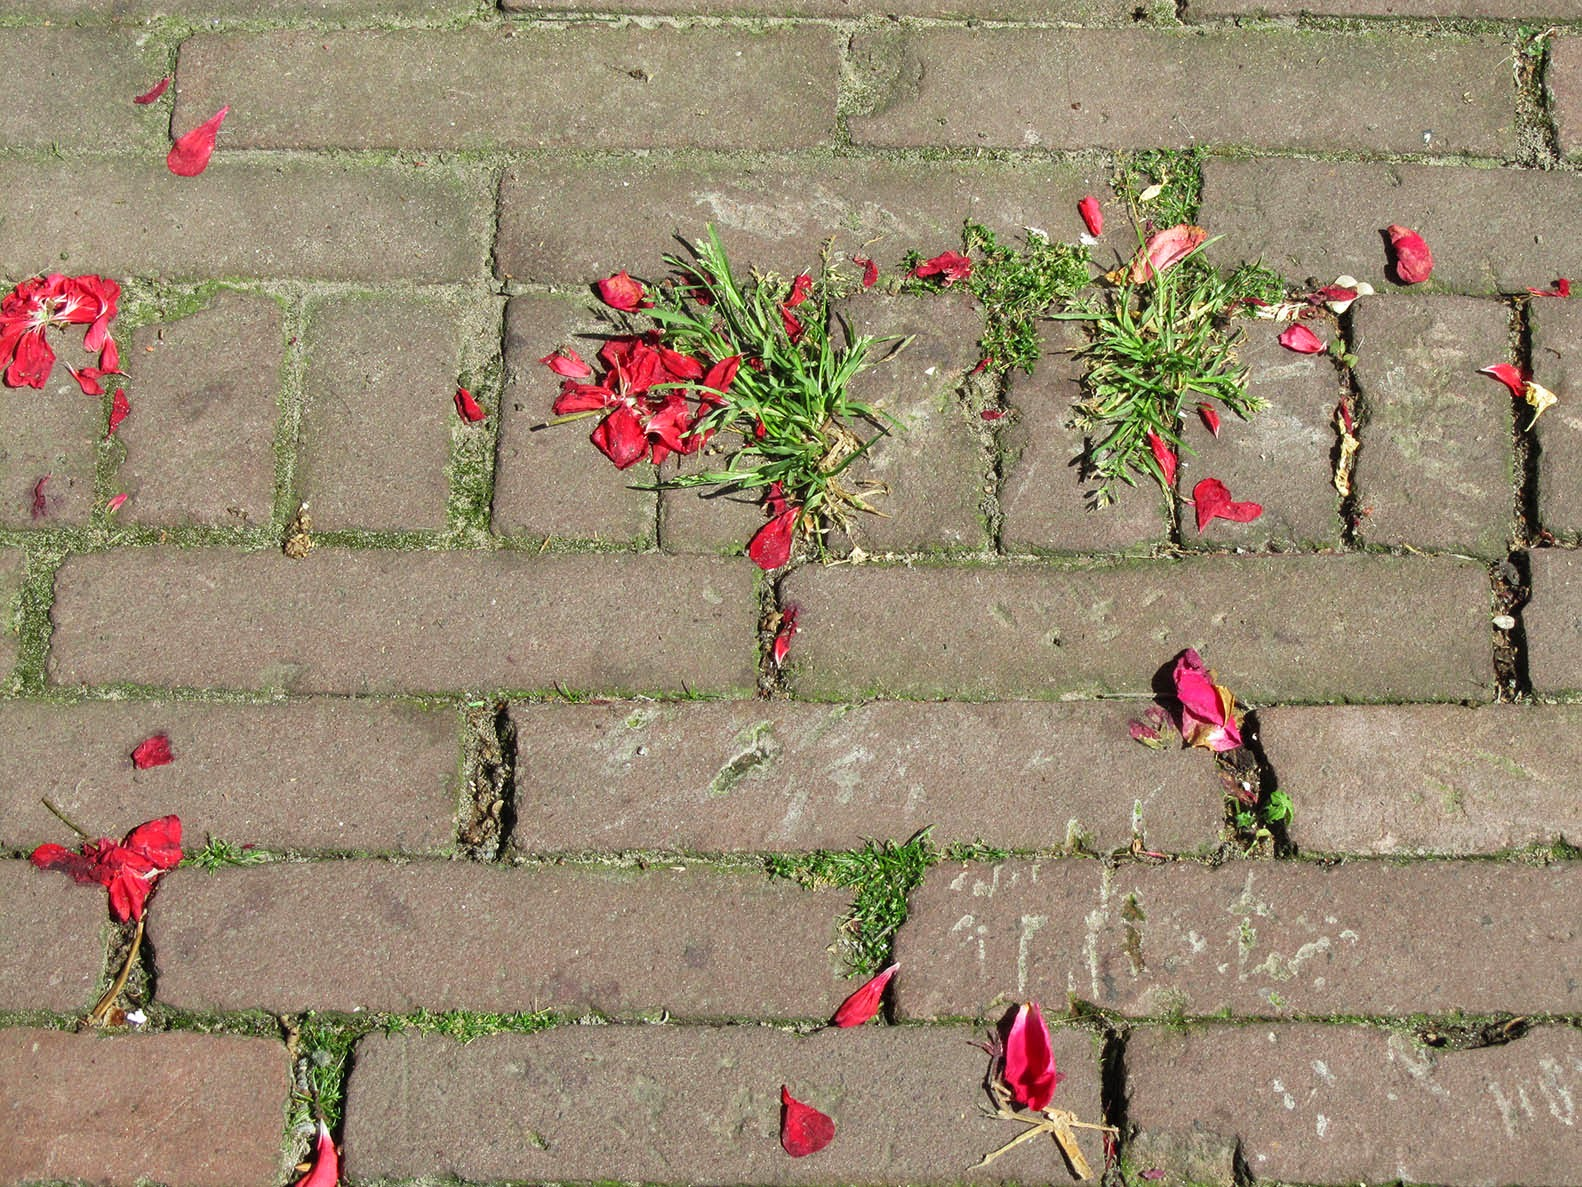 red rose petals on the ground